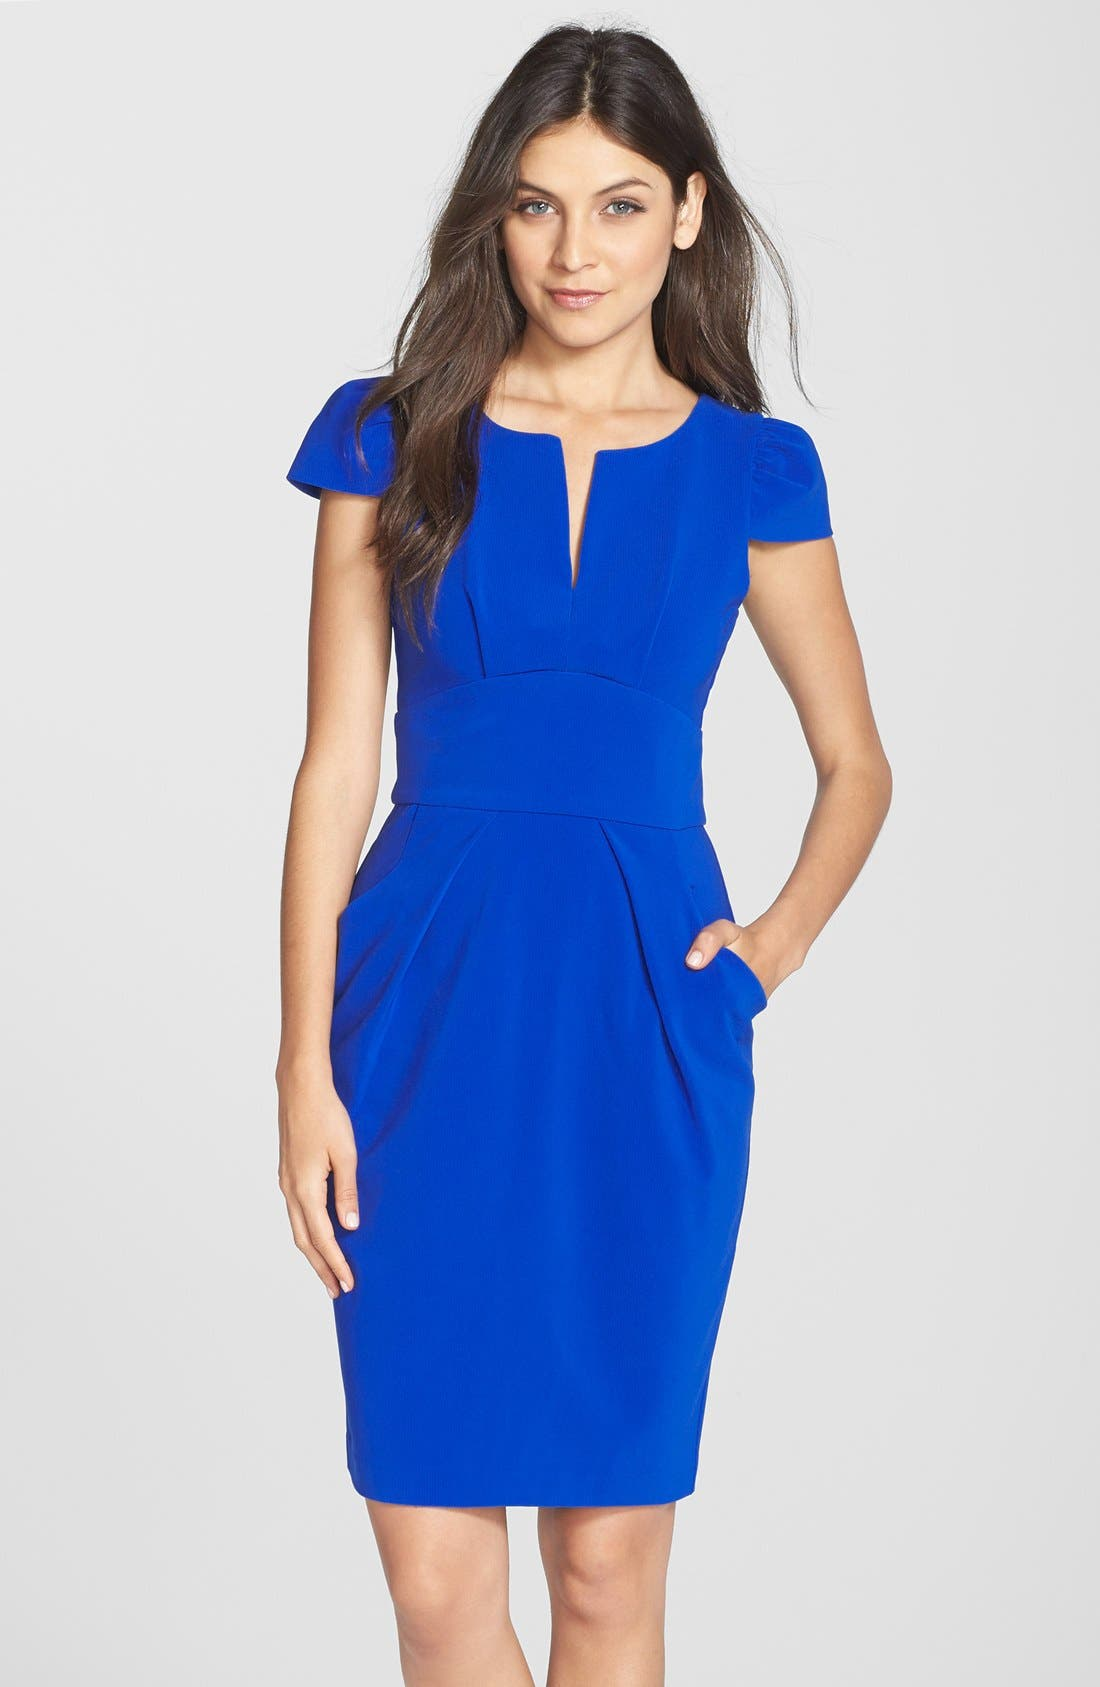 Alternate Image 1 Selected - Clove Split Neck Sheath Dress (Nordstrom Exclusive)